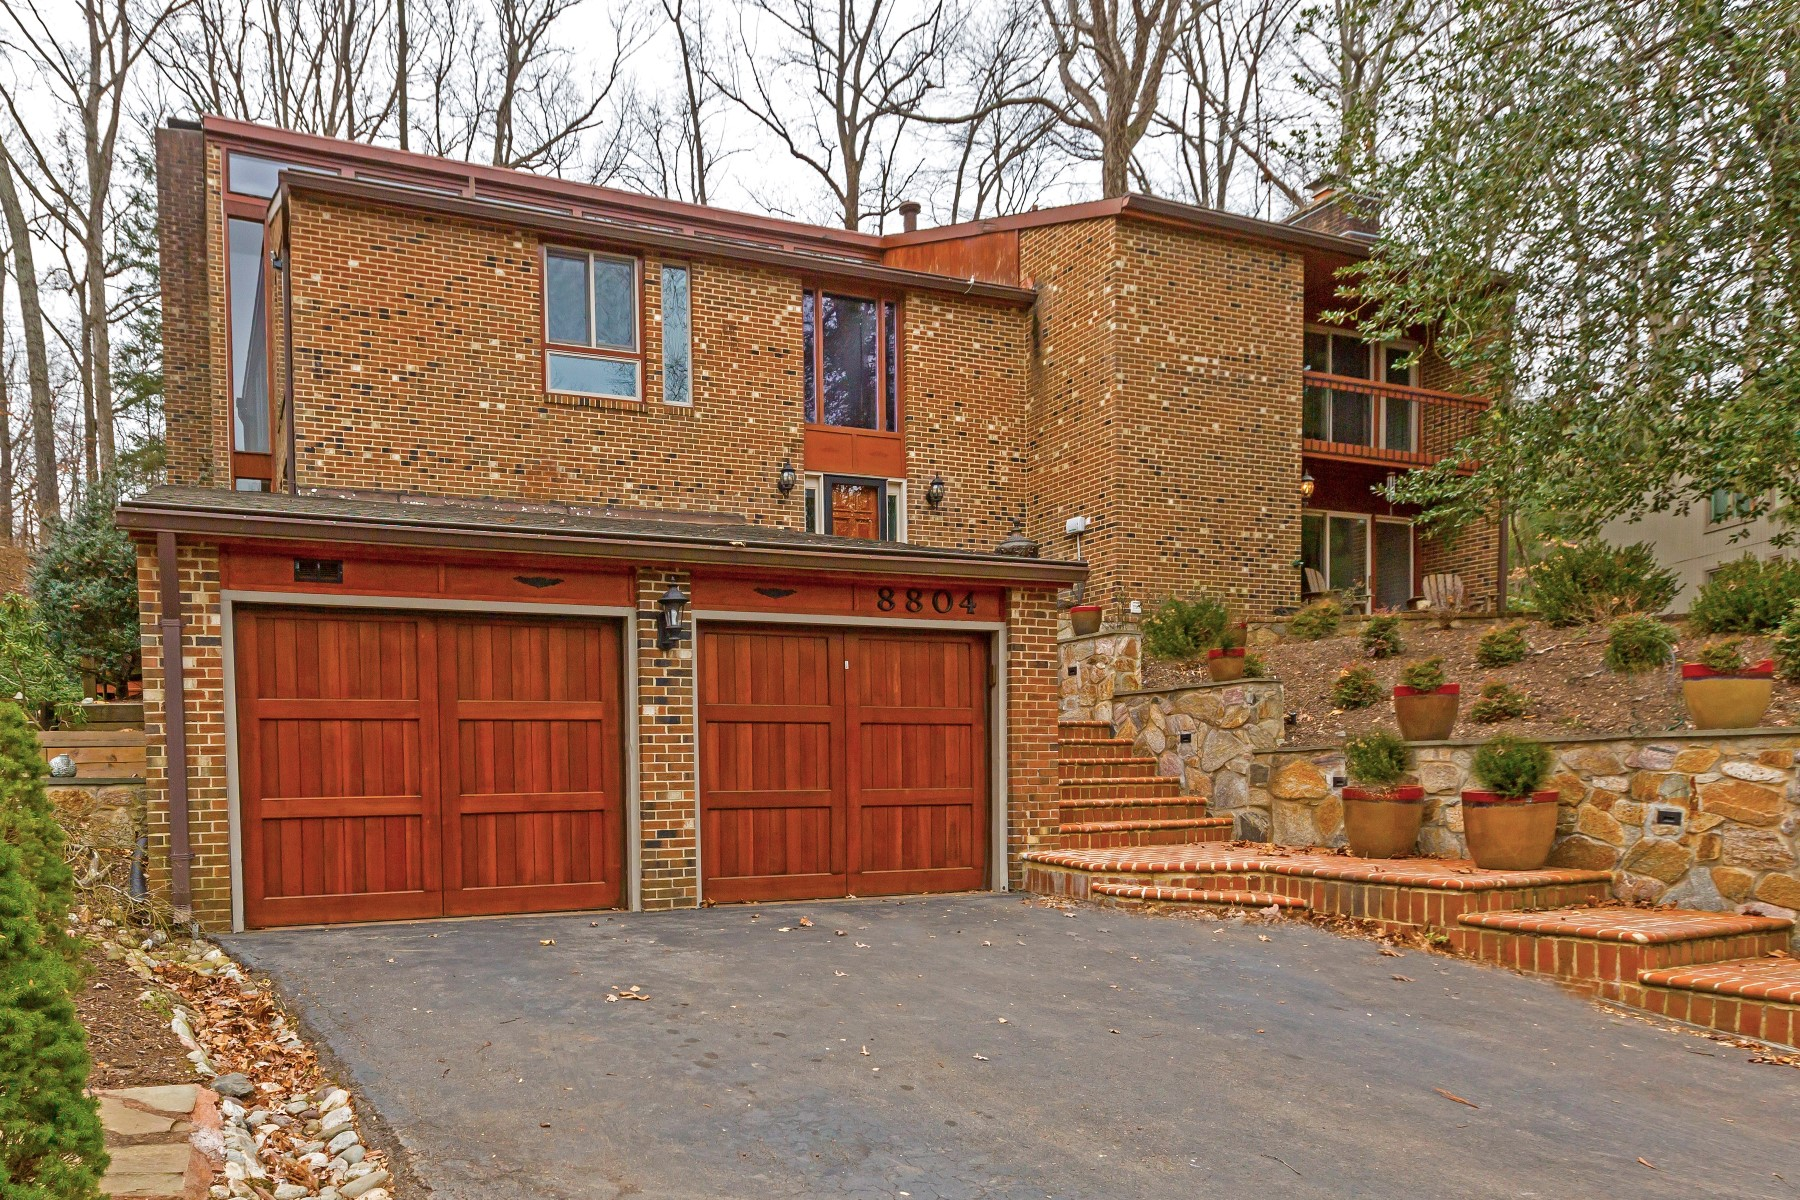 Single Family Home for Sale at 8804 Quiet Stream, Potomac 8804 Quiet Stream Ct Potomac, Maryland 20854 United States